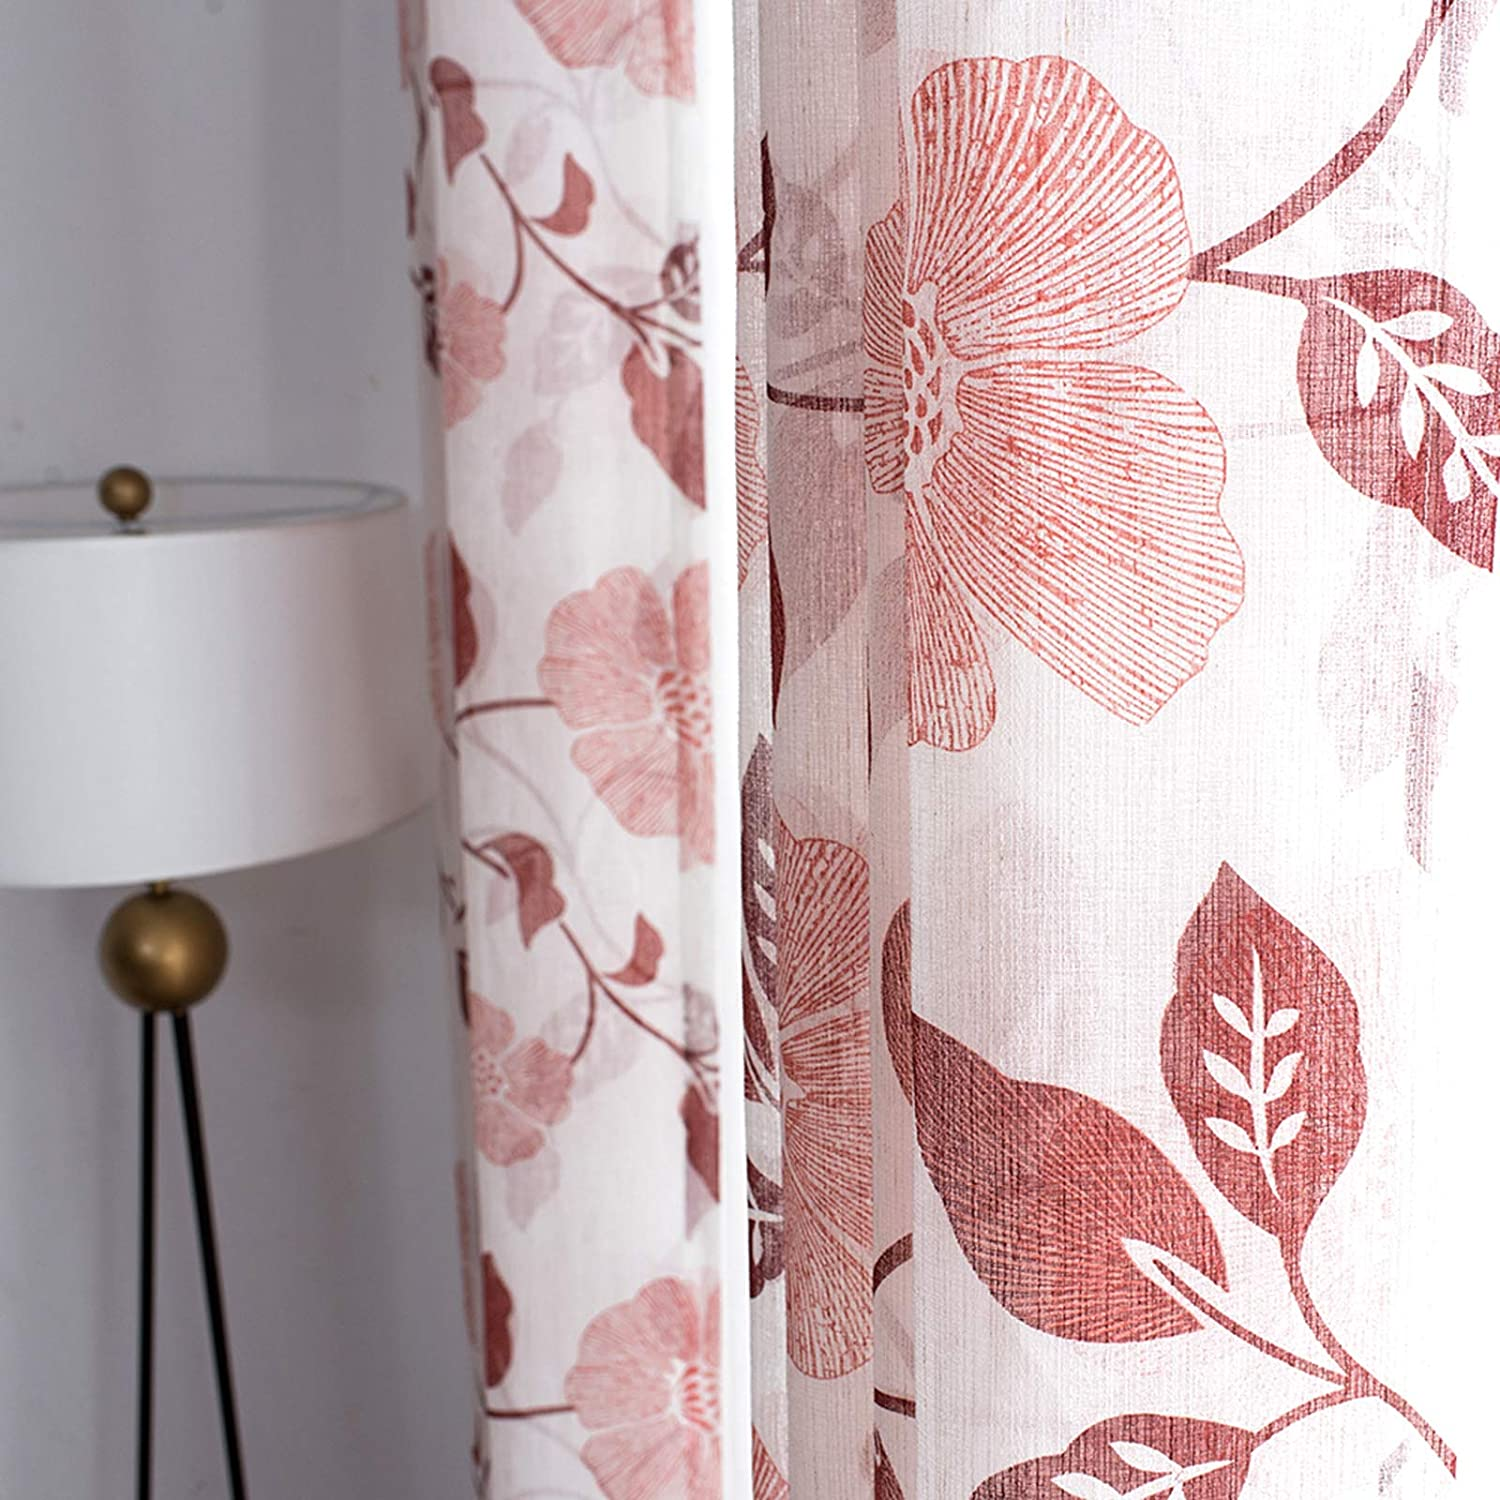 Sheer Curtains Linen Blend Textured 45 inches Long Short Sheers Floral Printed Bedroom Curtain Panels Basement Burgundy Red Flower Leaves Print Living Room Window Treatment 2 Panels Rod Pocket